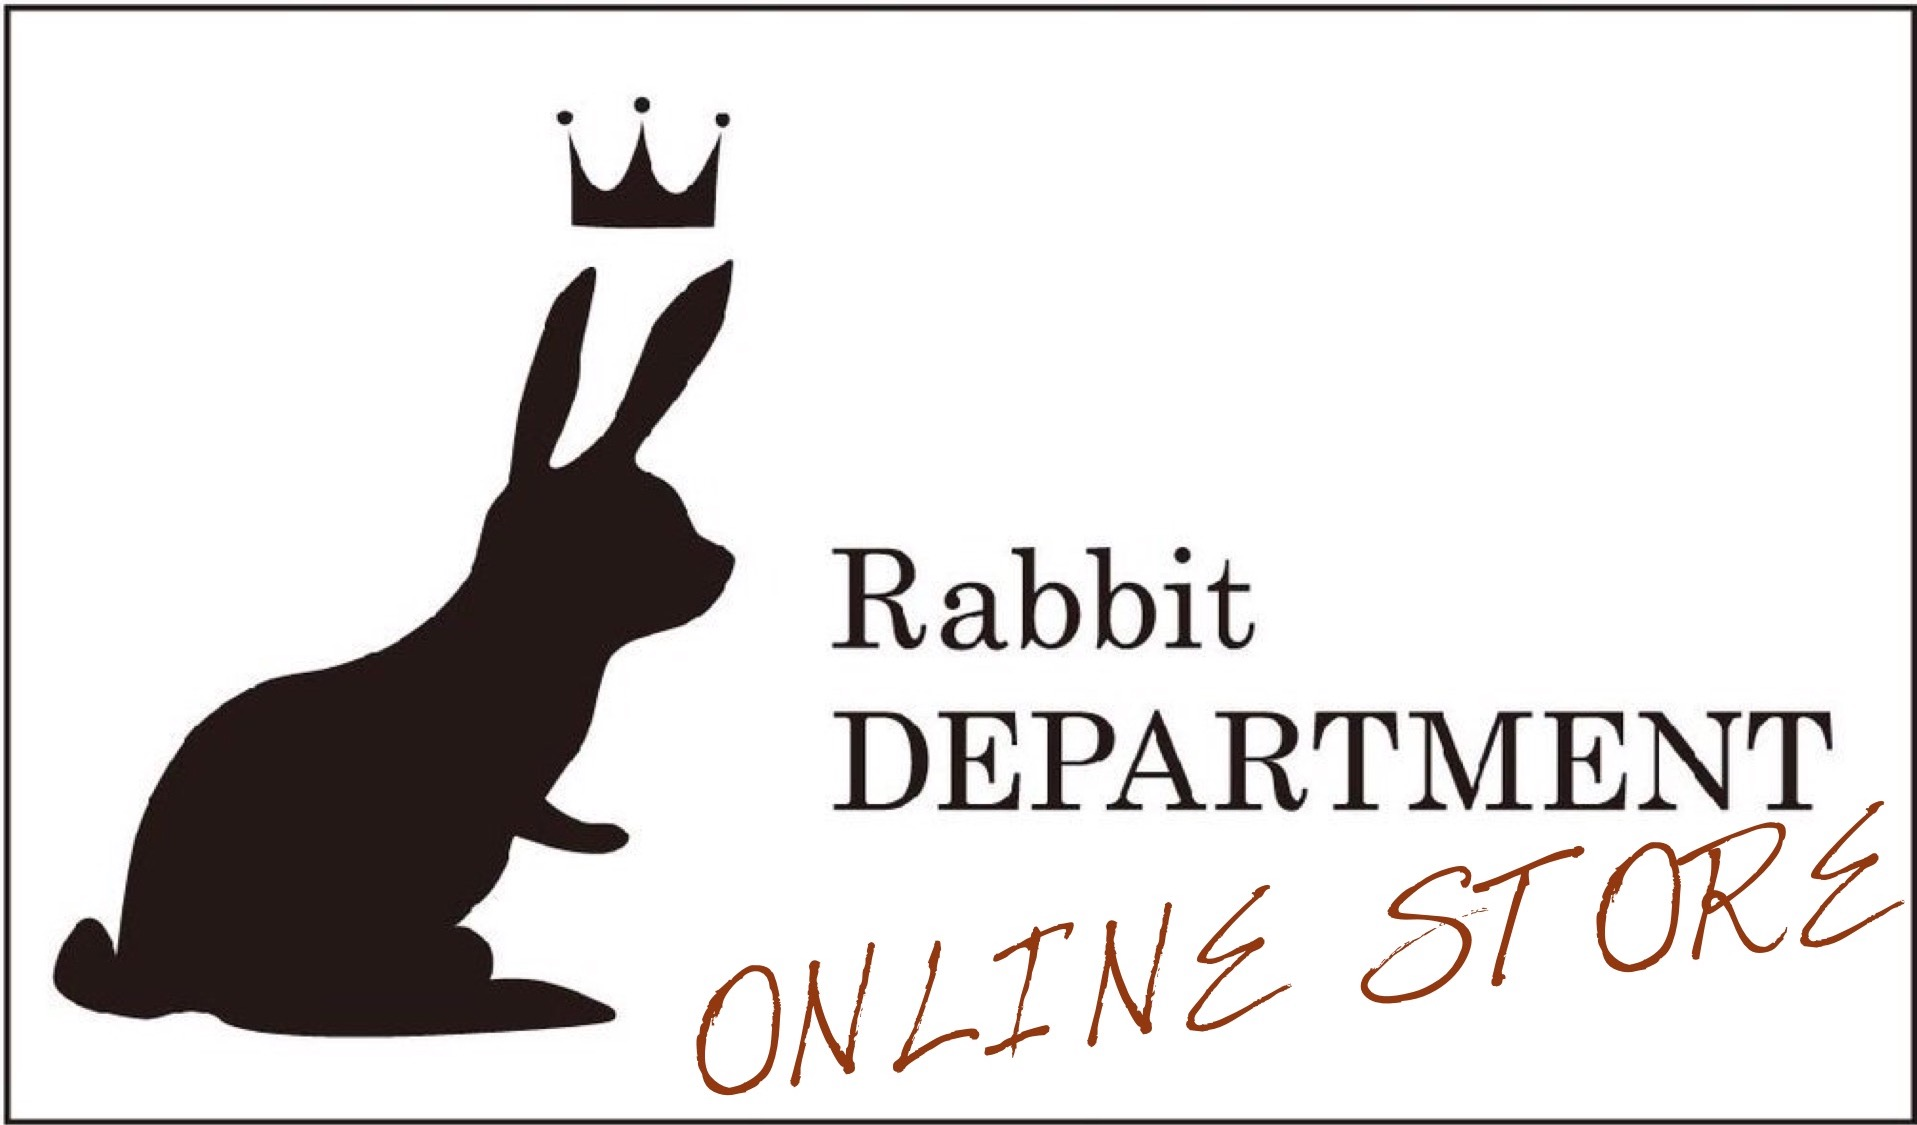 Rabbit DEPARTMENT ONLINE SHOP